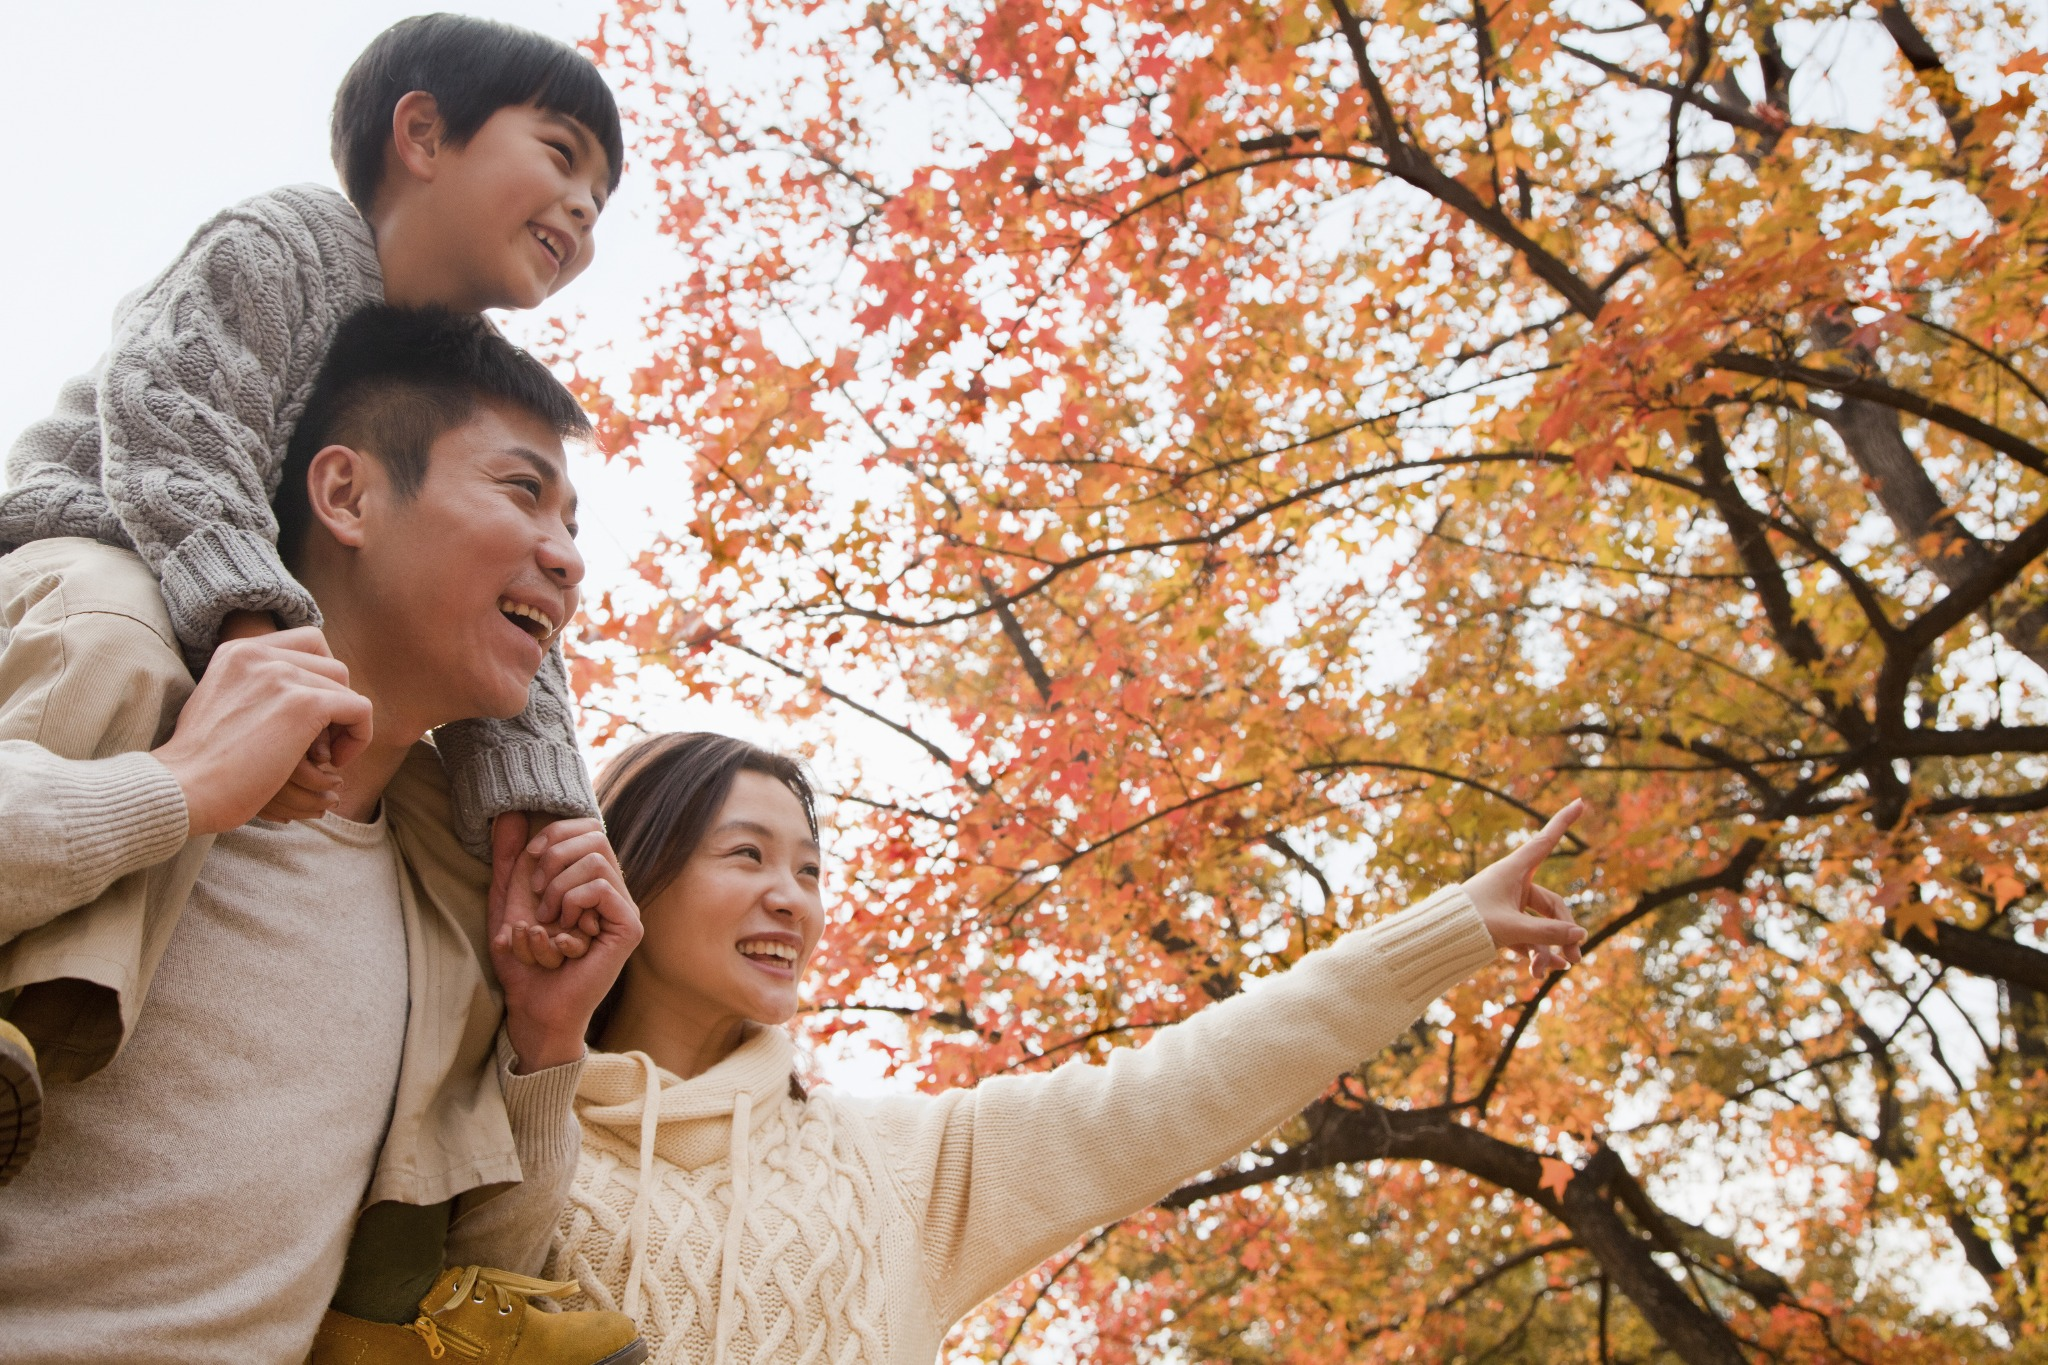 asian_family_enjoying_fall_2048x1365.png